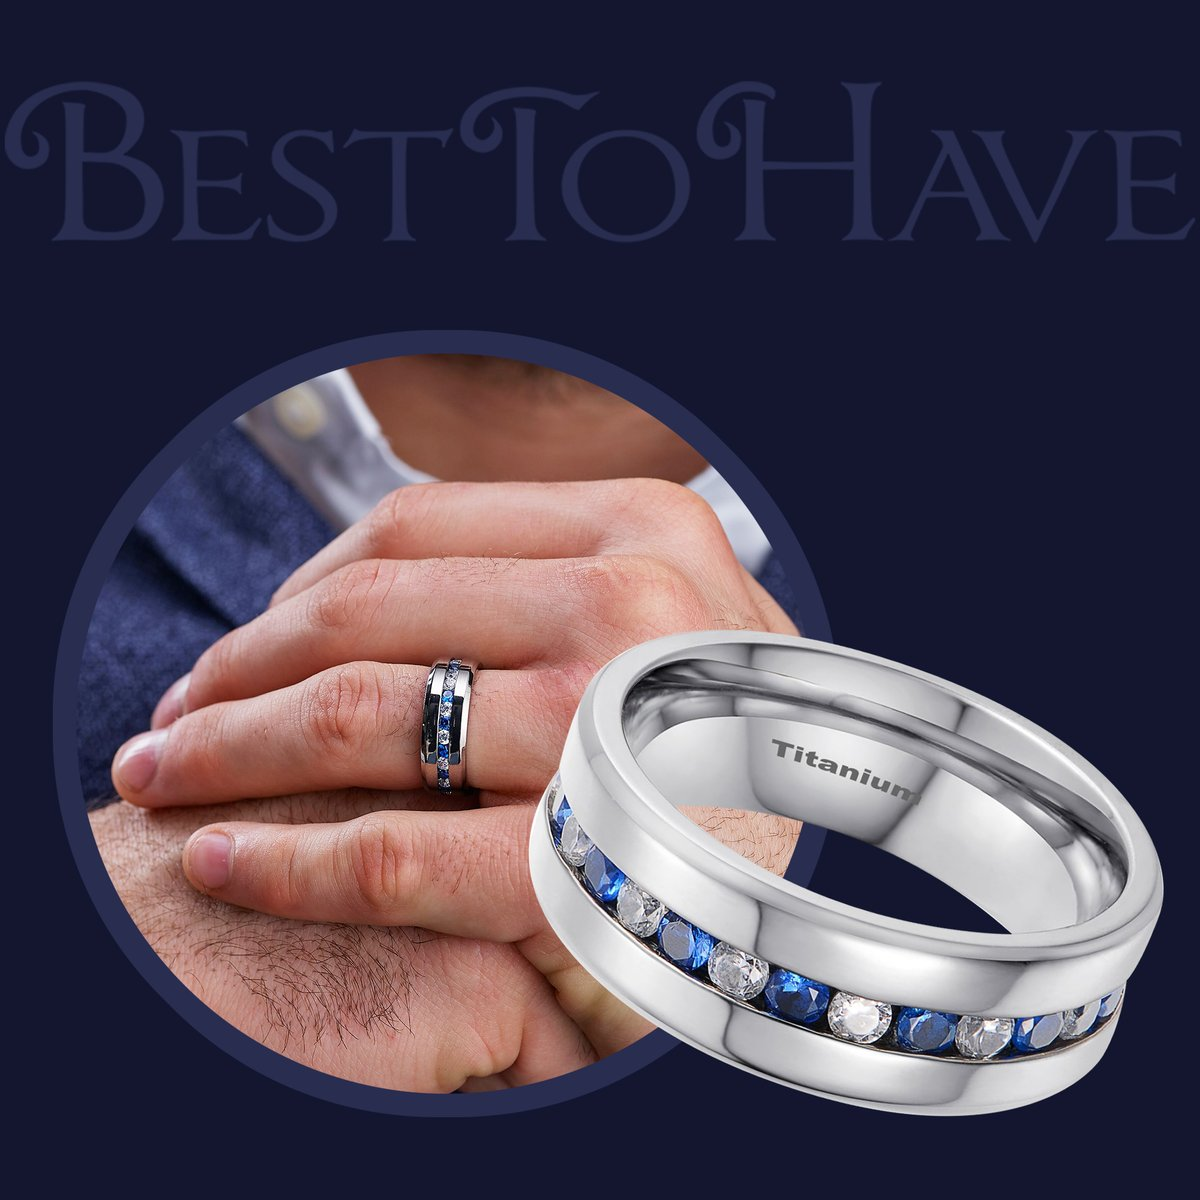 Simulated Blue Sapphire Band Ring Code: 324 £29.99 Shop more:  #Besttohave #Besttohavejewelry #rings #engagement #outfit #outfitoftheday #menrings #weddingrings #lovejewelry #ring #titaniumRing #titaniumjewelry #cubiczirconia #wedding #titanium